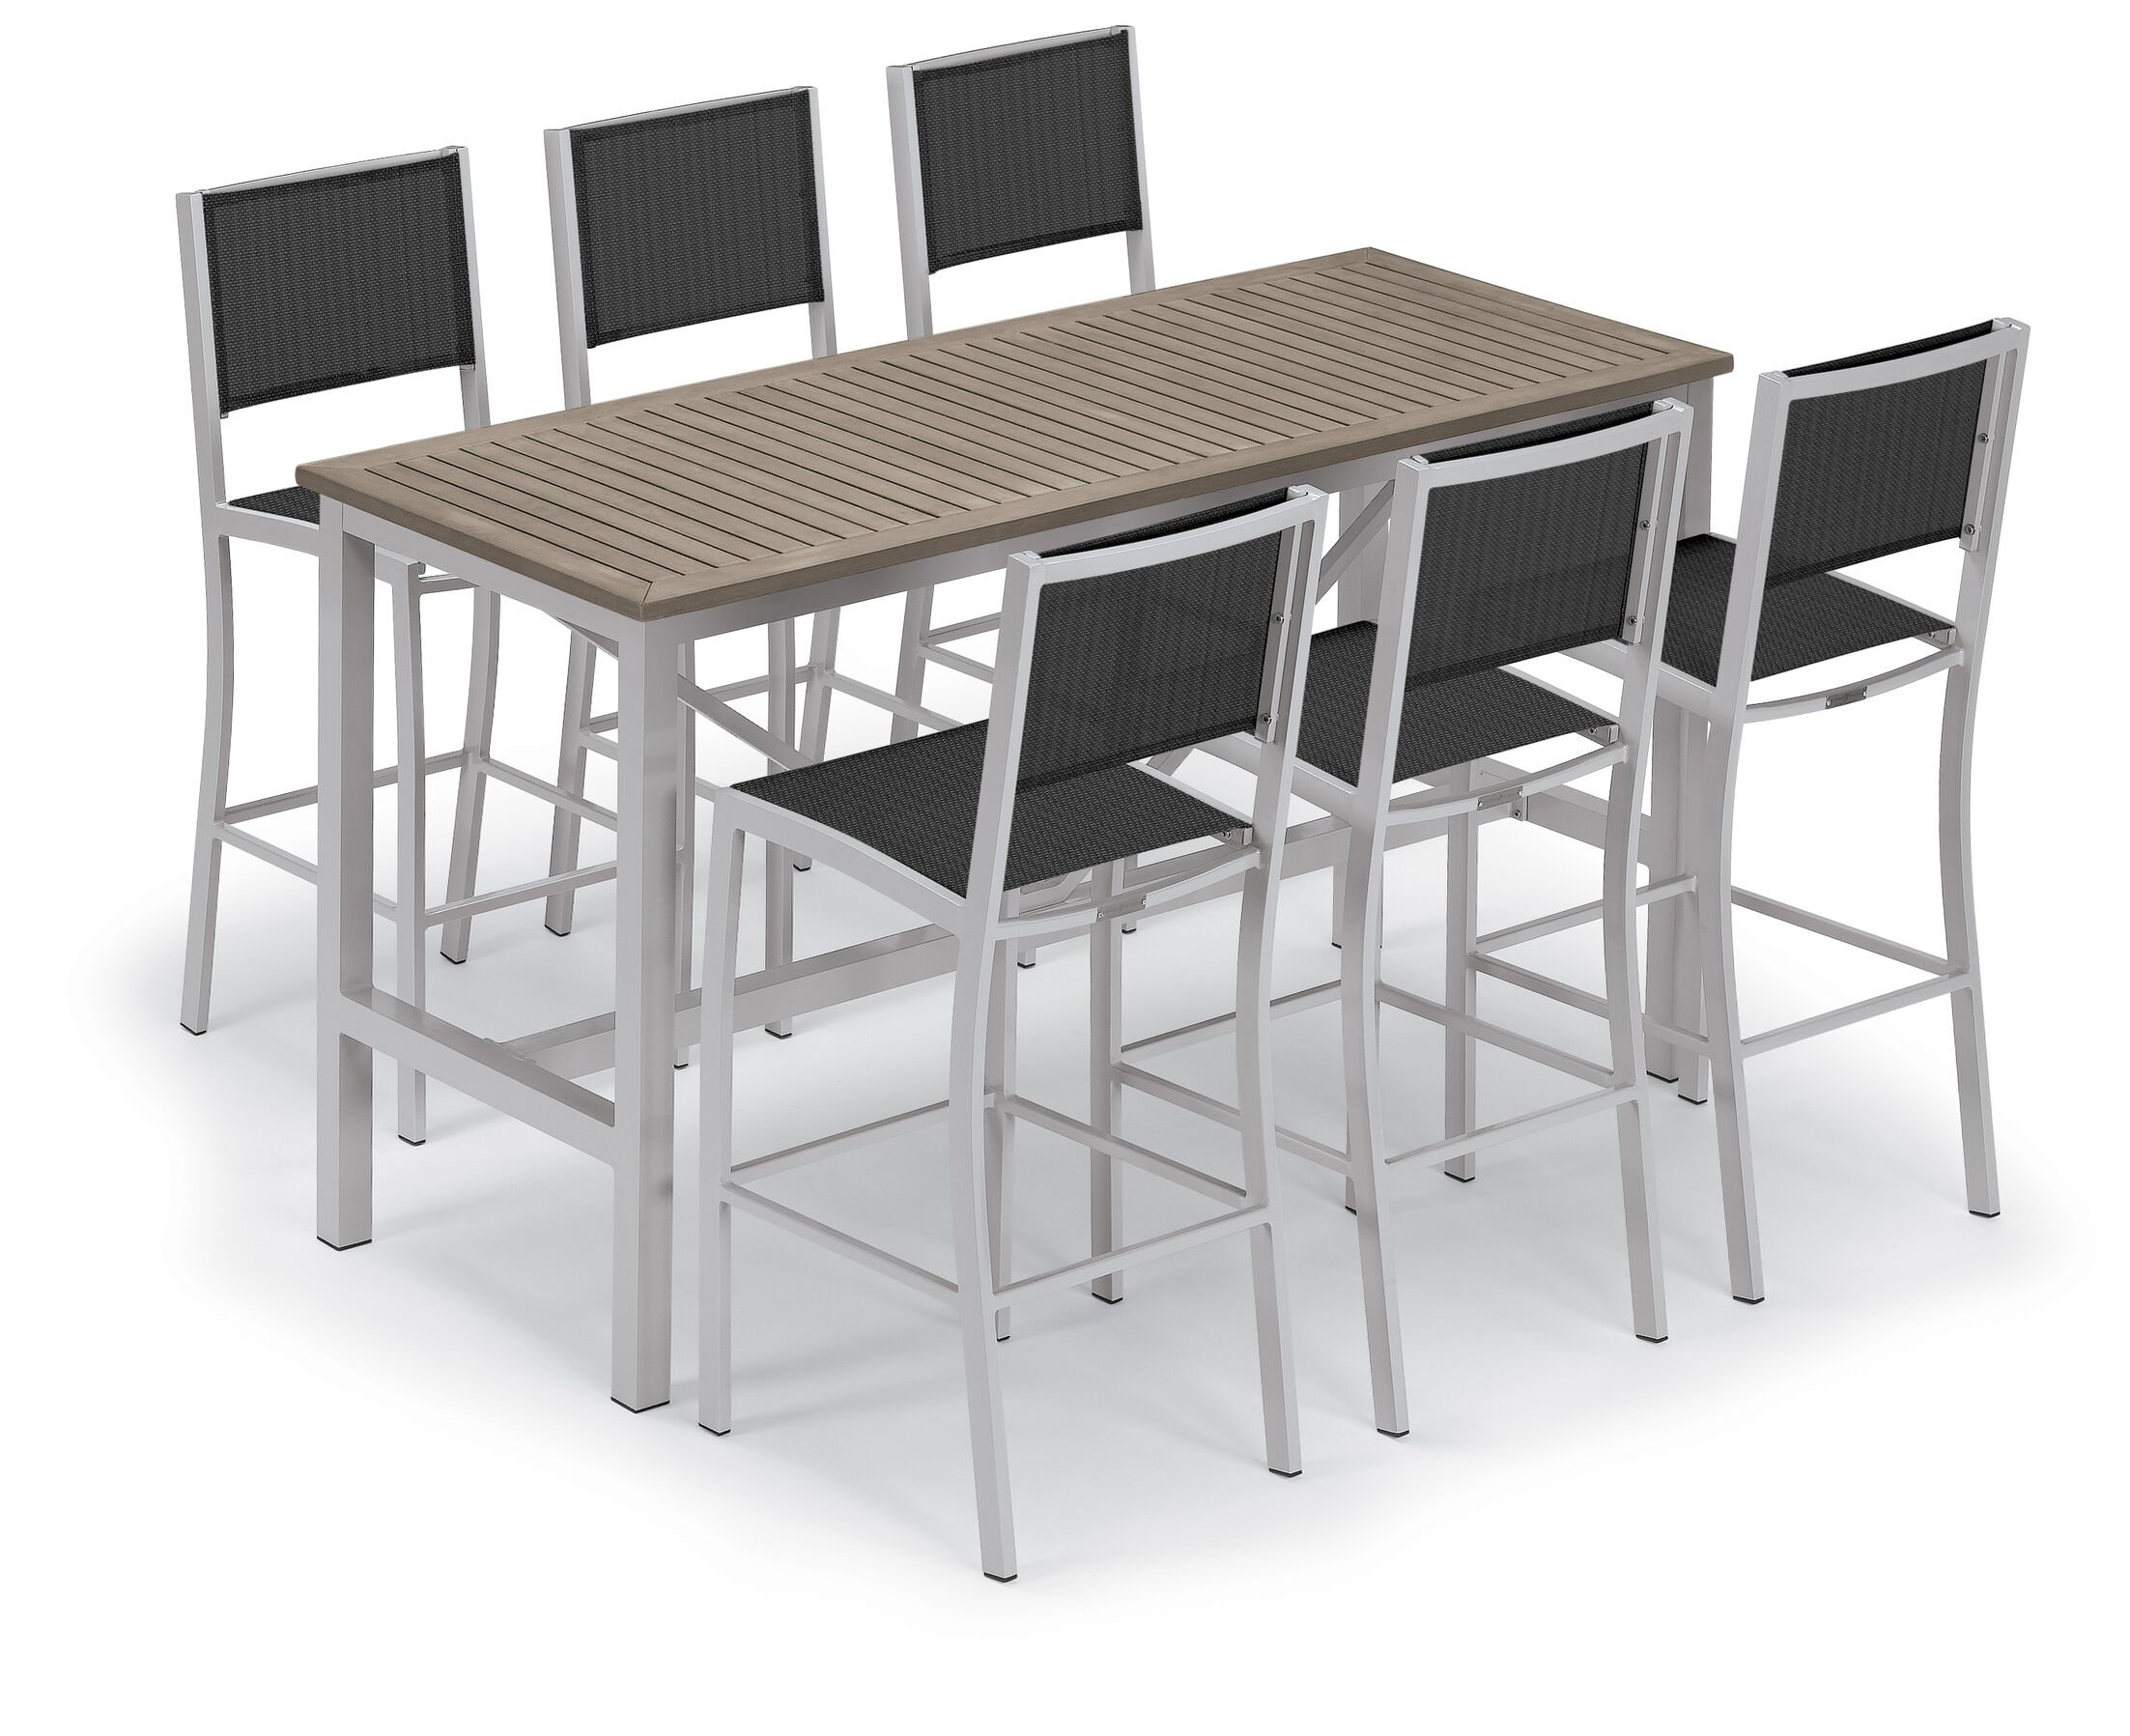 Maclin 7 Piece Bar Height Dining Set Color: Natural, Accessory Color: Natural Sling